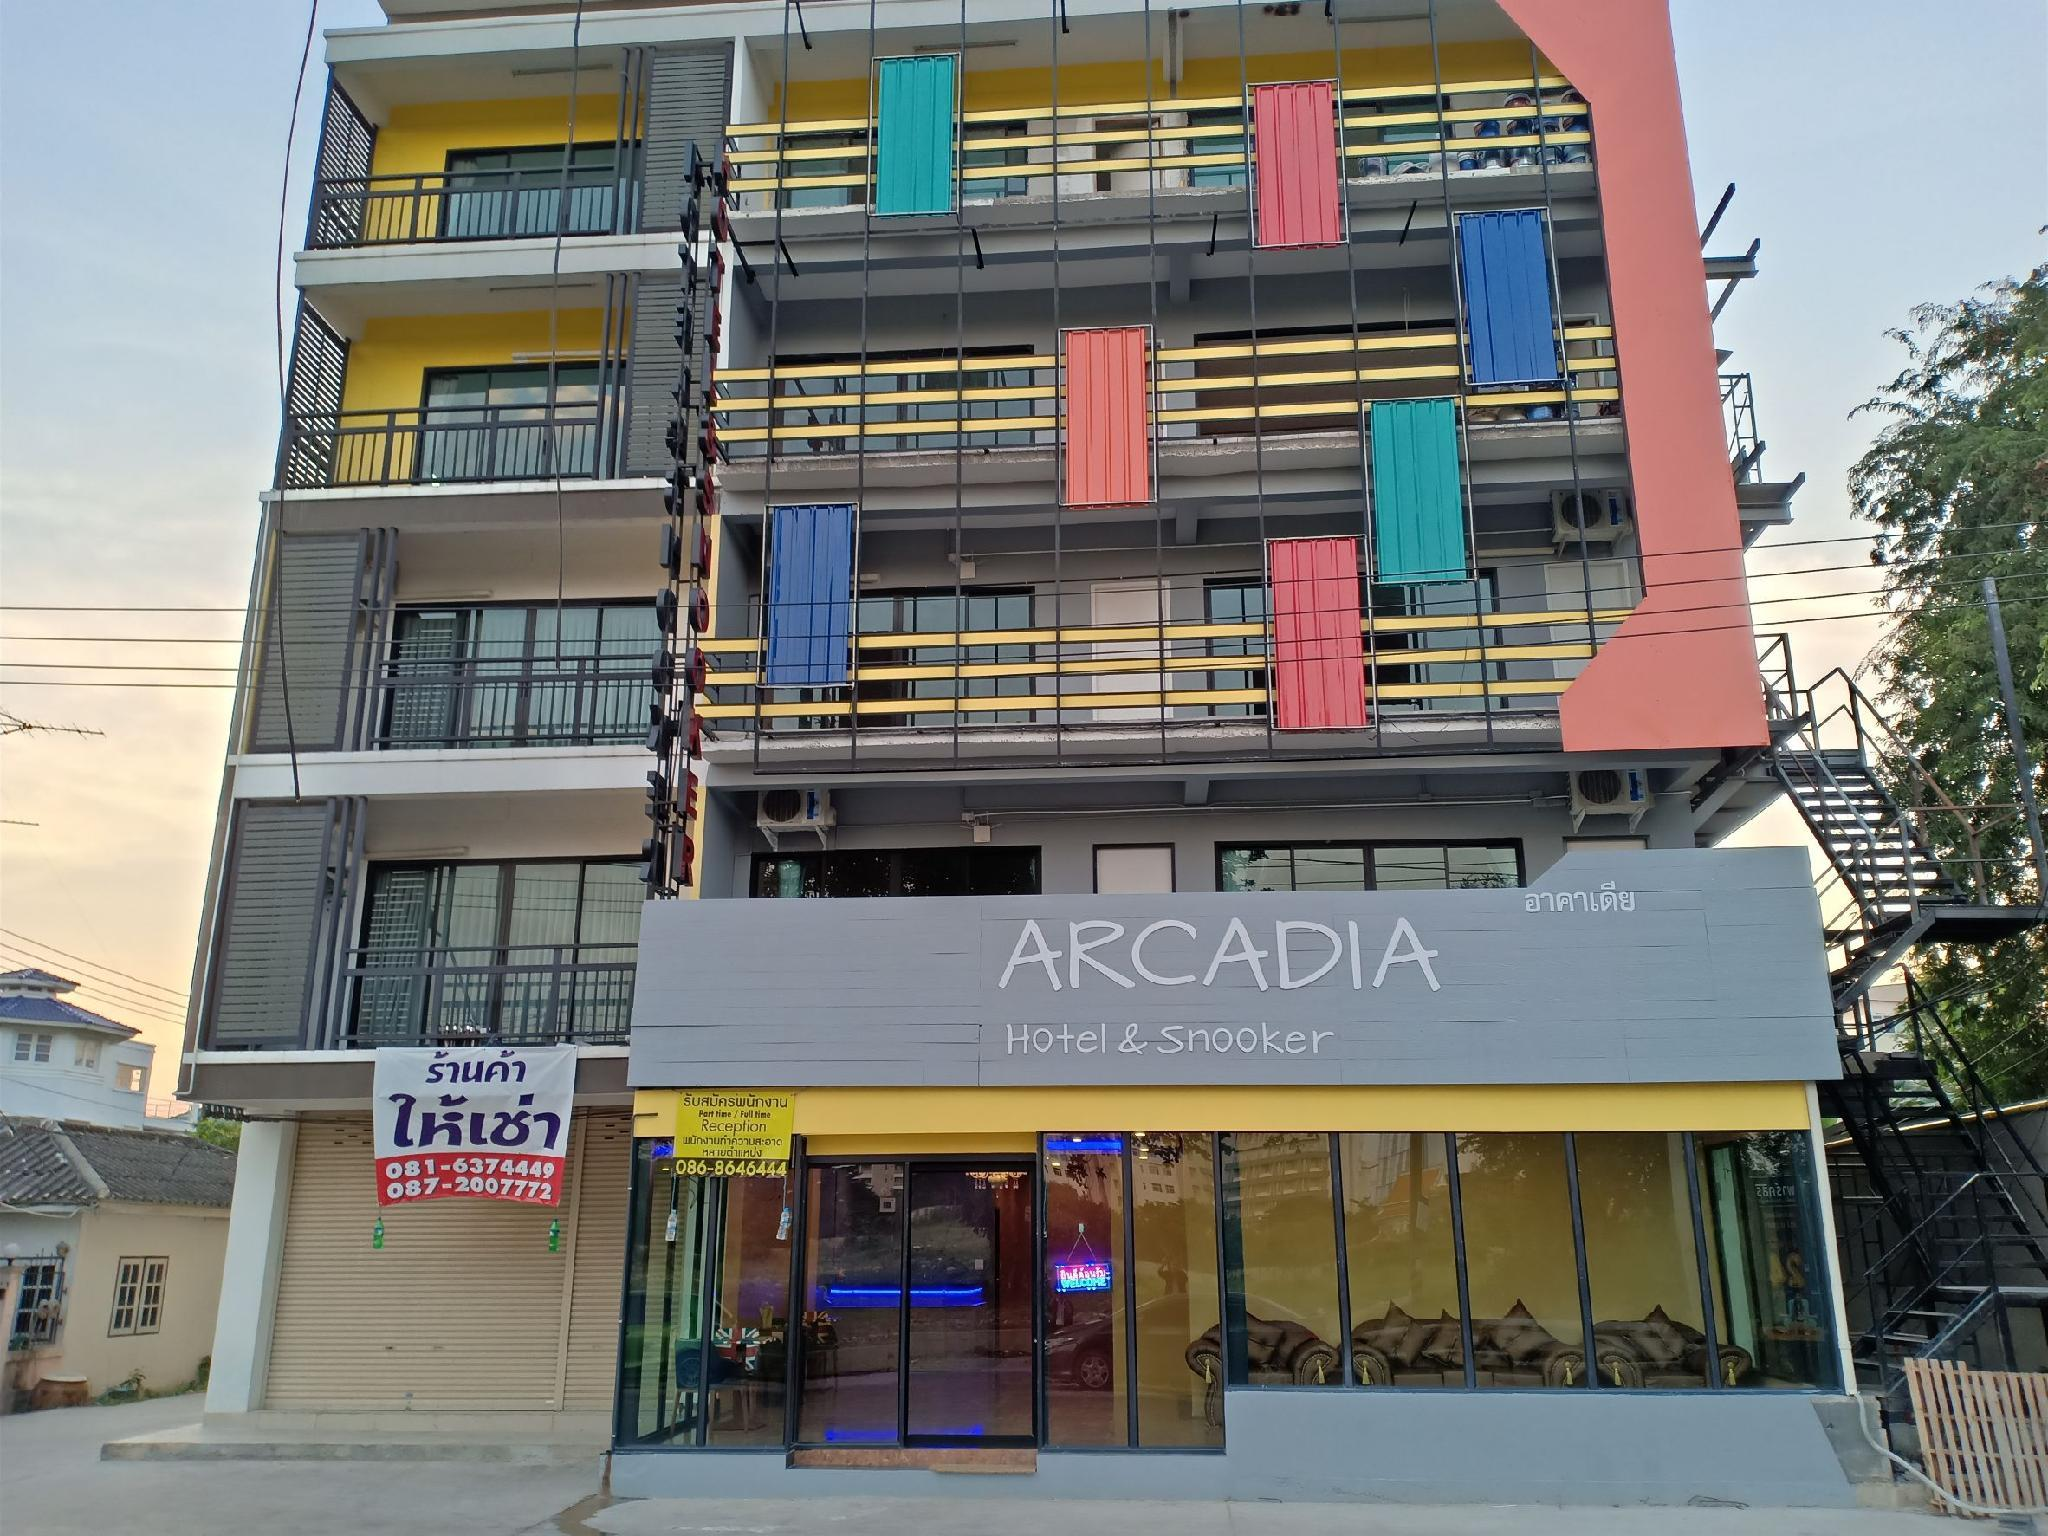 Arcadia Hotel And Snooker